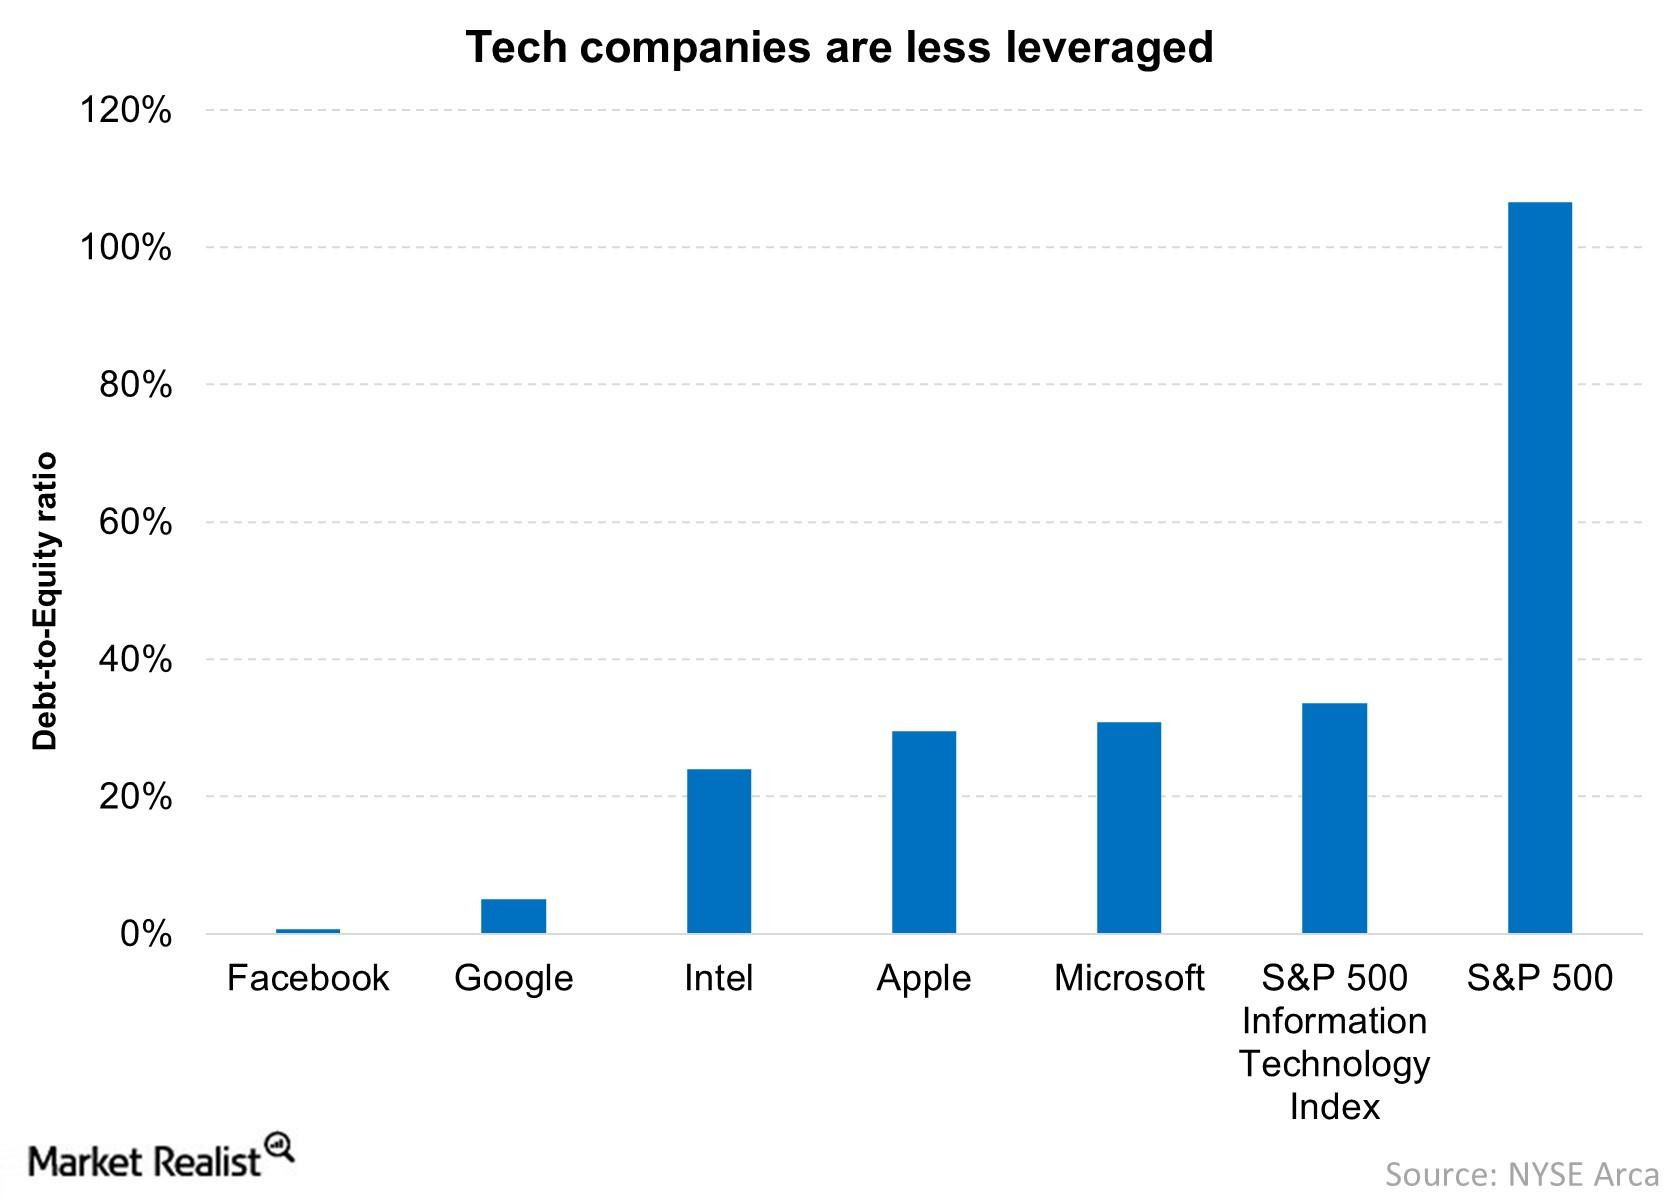 Relatively low debt-to equity ratio gives tech companies flexibility